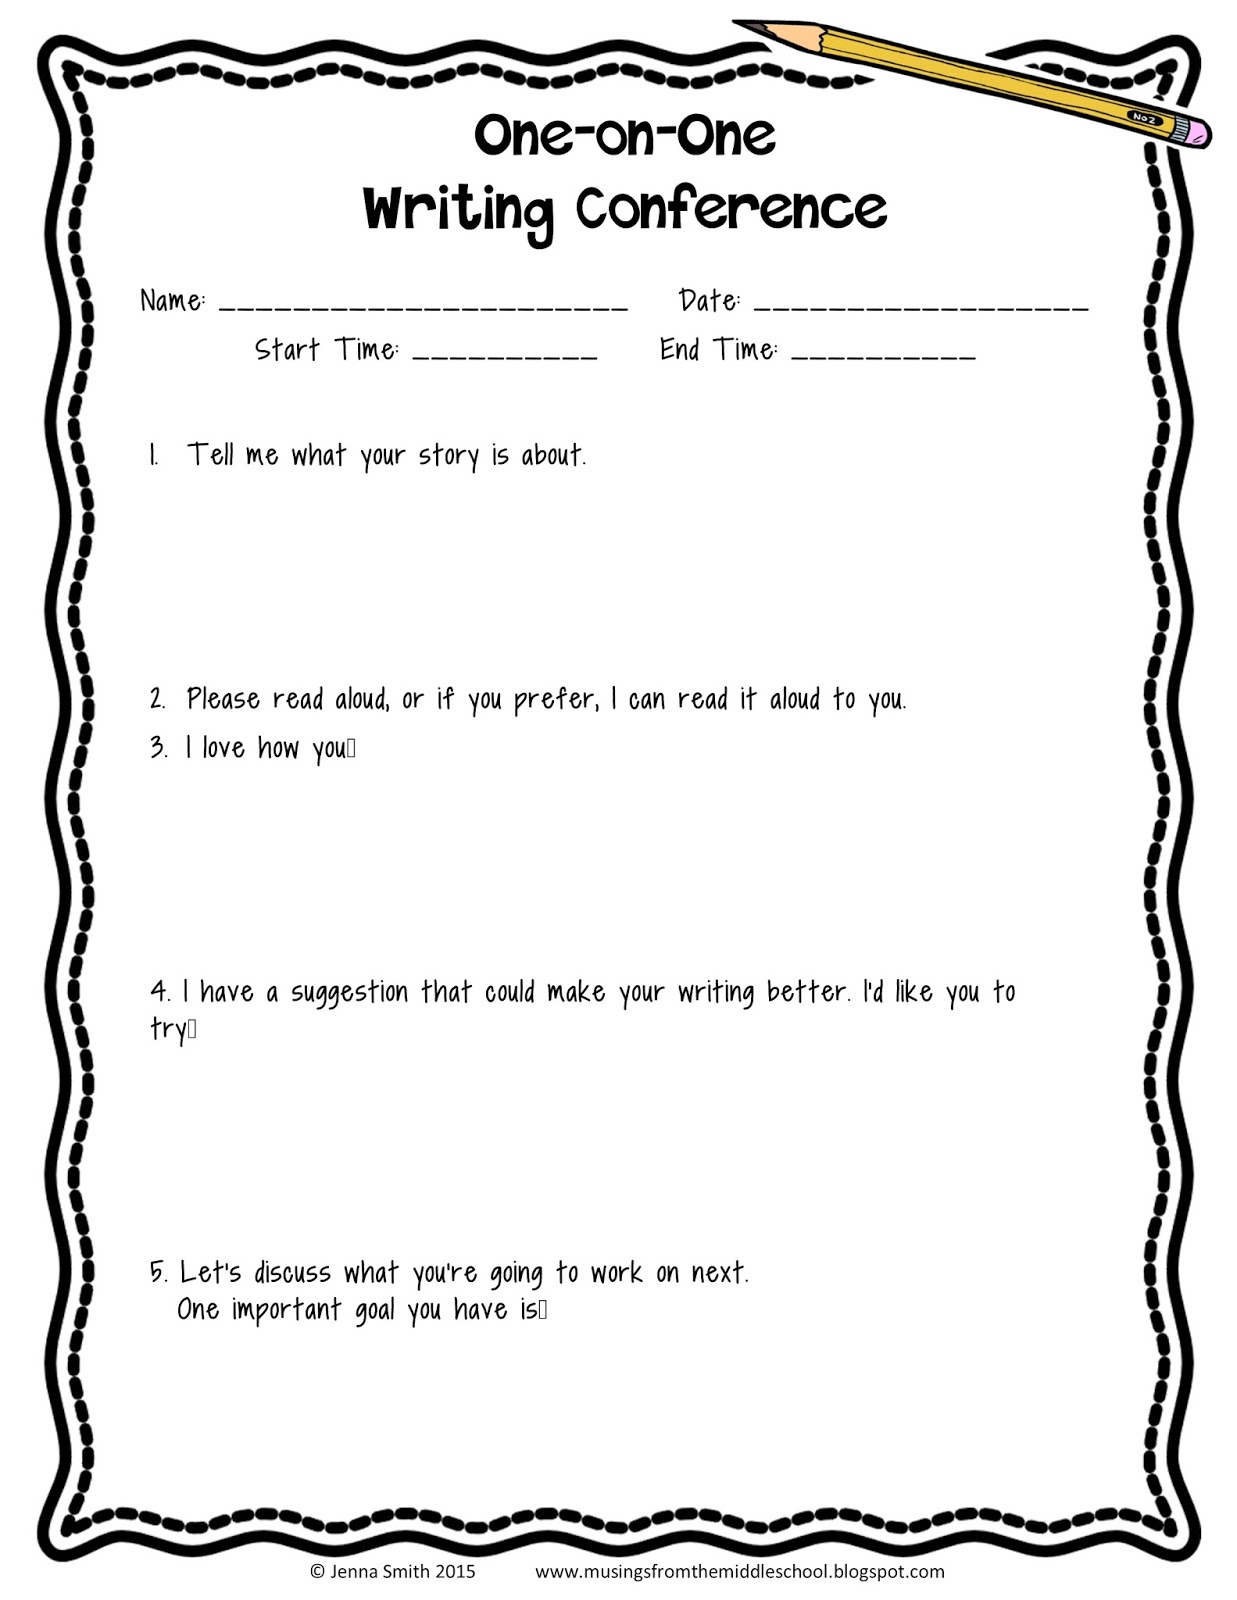 Musings from the Middle School: Conducting a Writing